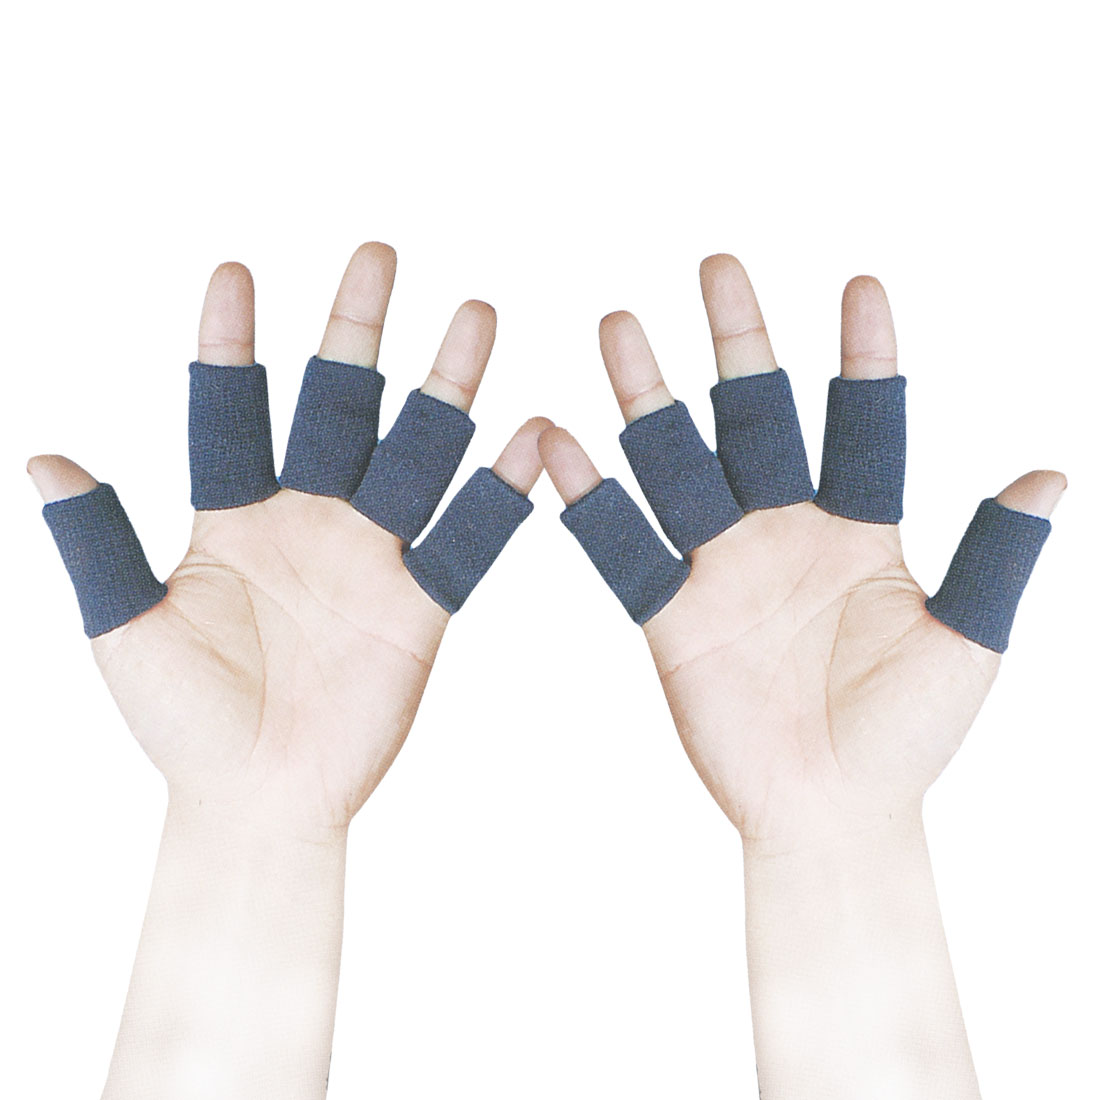 10 Pcs Dark Blue Elastic Knitted Sports Finger Sleeve Cover Wrap